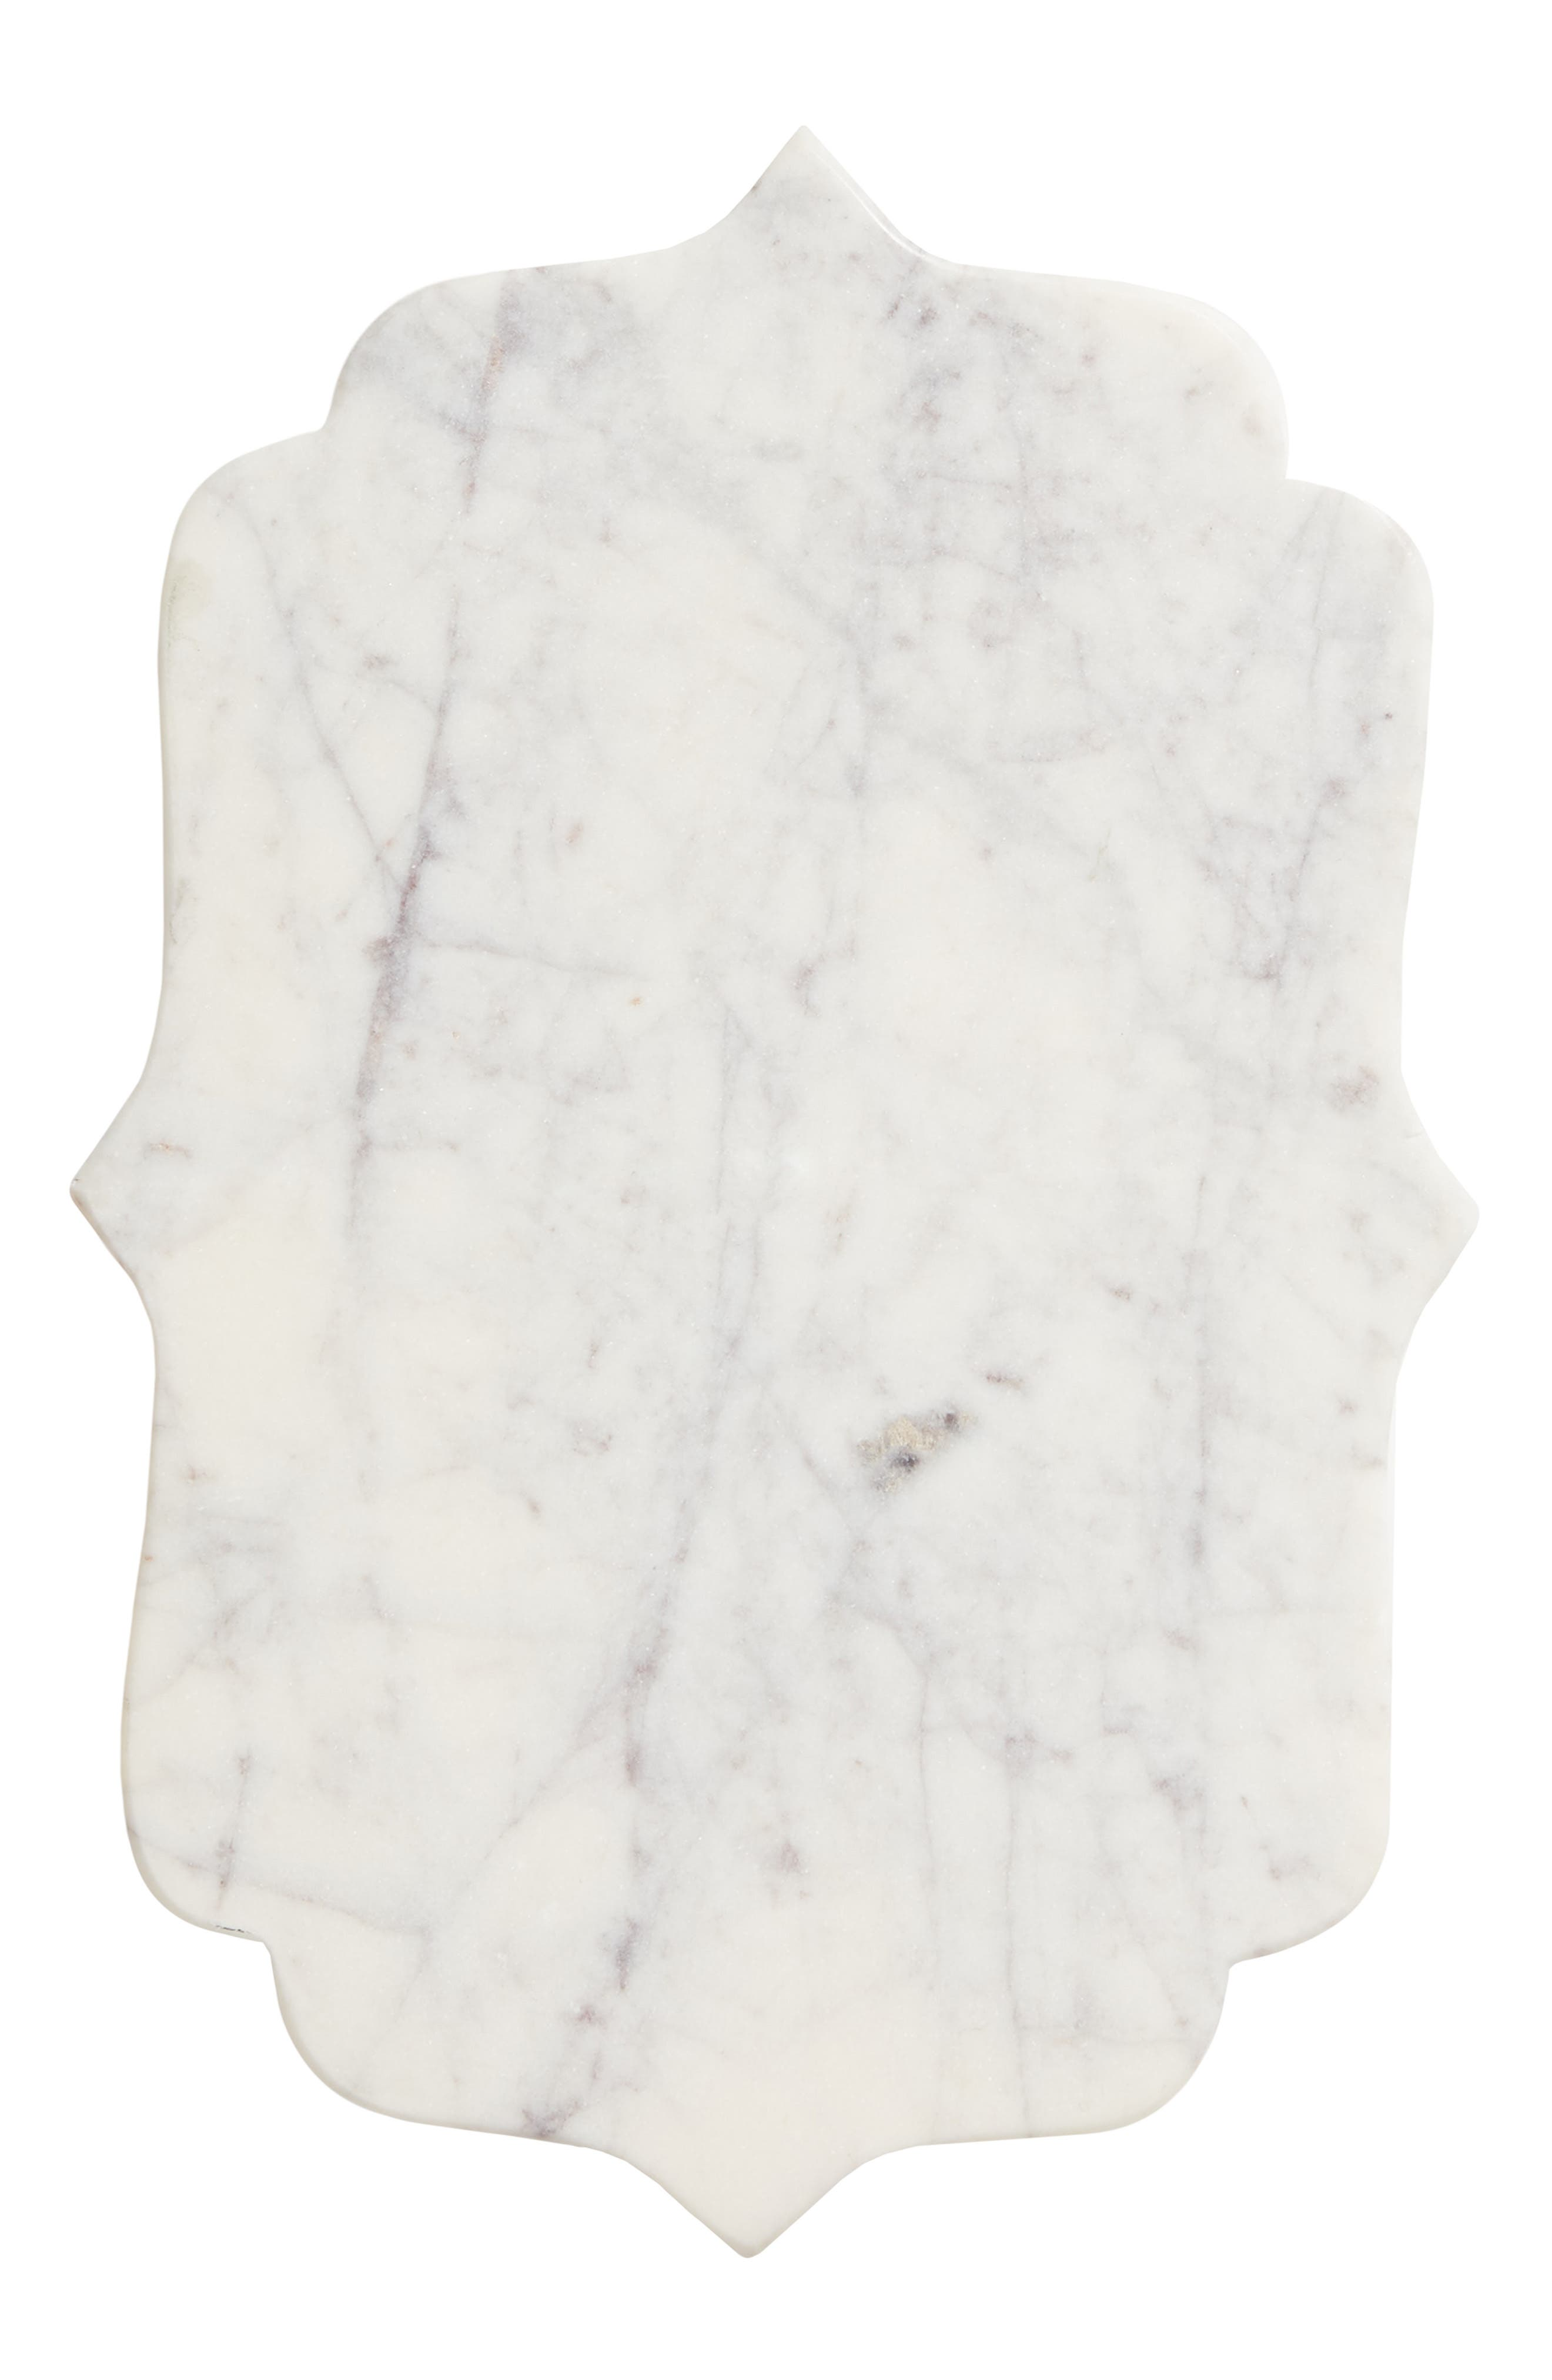 NORDSTROM AT HOME Lavender Marble Serving Tray, Main, color, WHITE